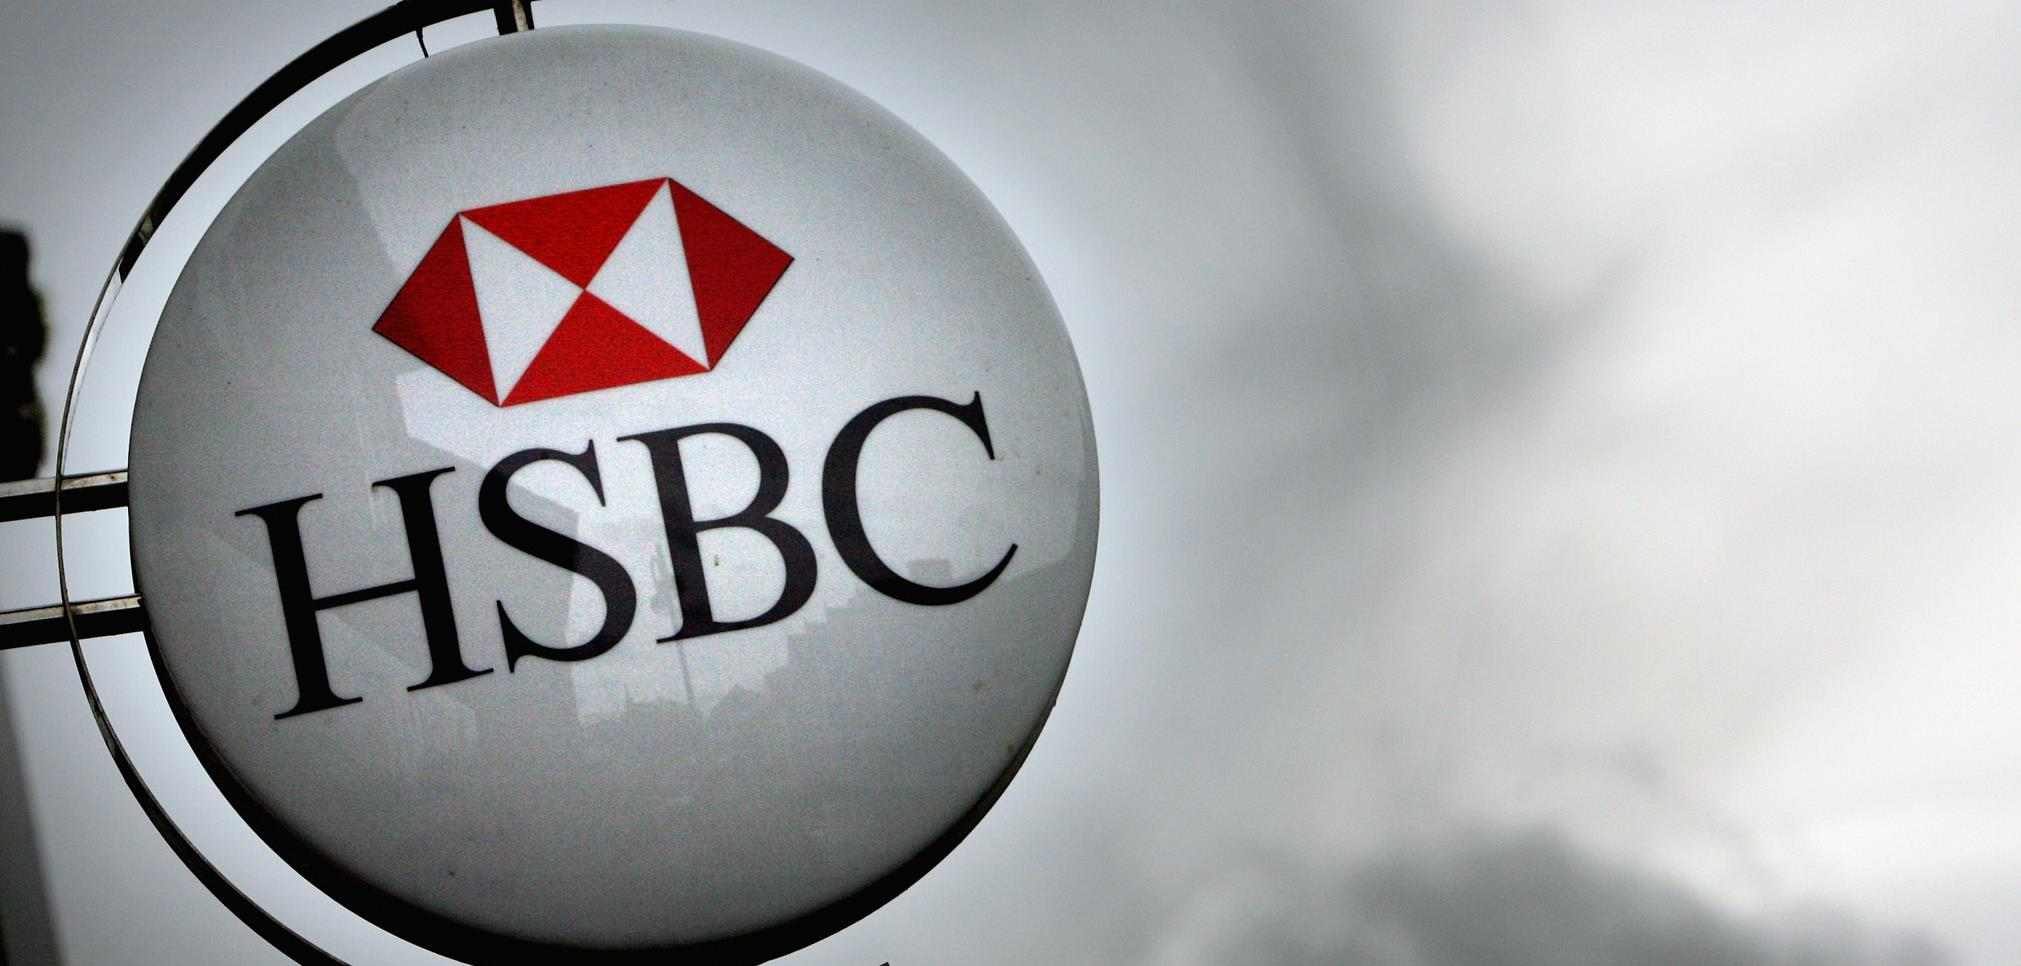 HSBC, the UK's largest bank, has said it has made a 8.7bn GBP loss, after the decline in the US housing market hit the value of its loans. The bank's losses are said to be the biggest write-down of the UK's big five because it has a lot of business and operations in the USA, however its annual profits still rose 10 percent to 12.2bn GBP, up from the year before.